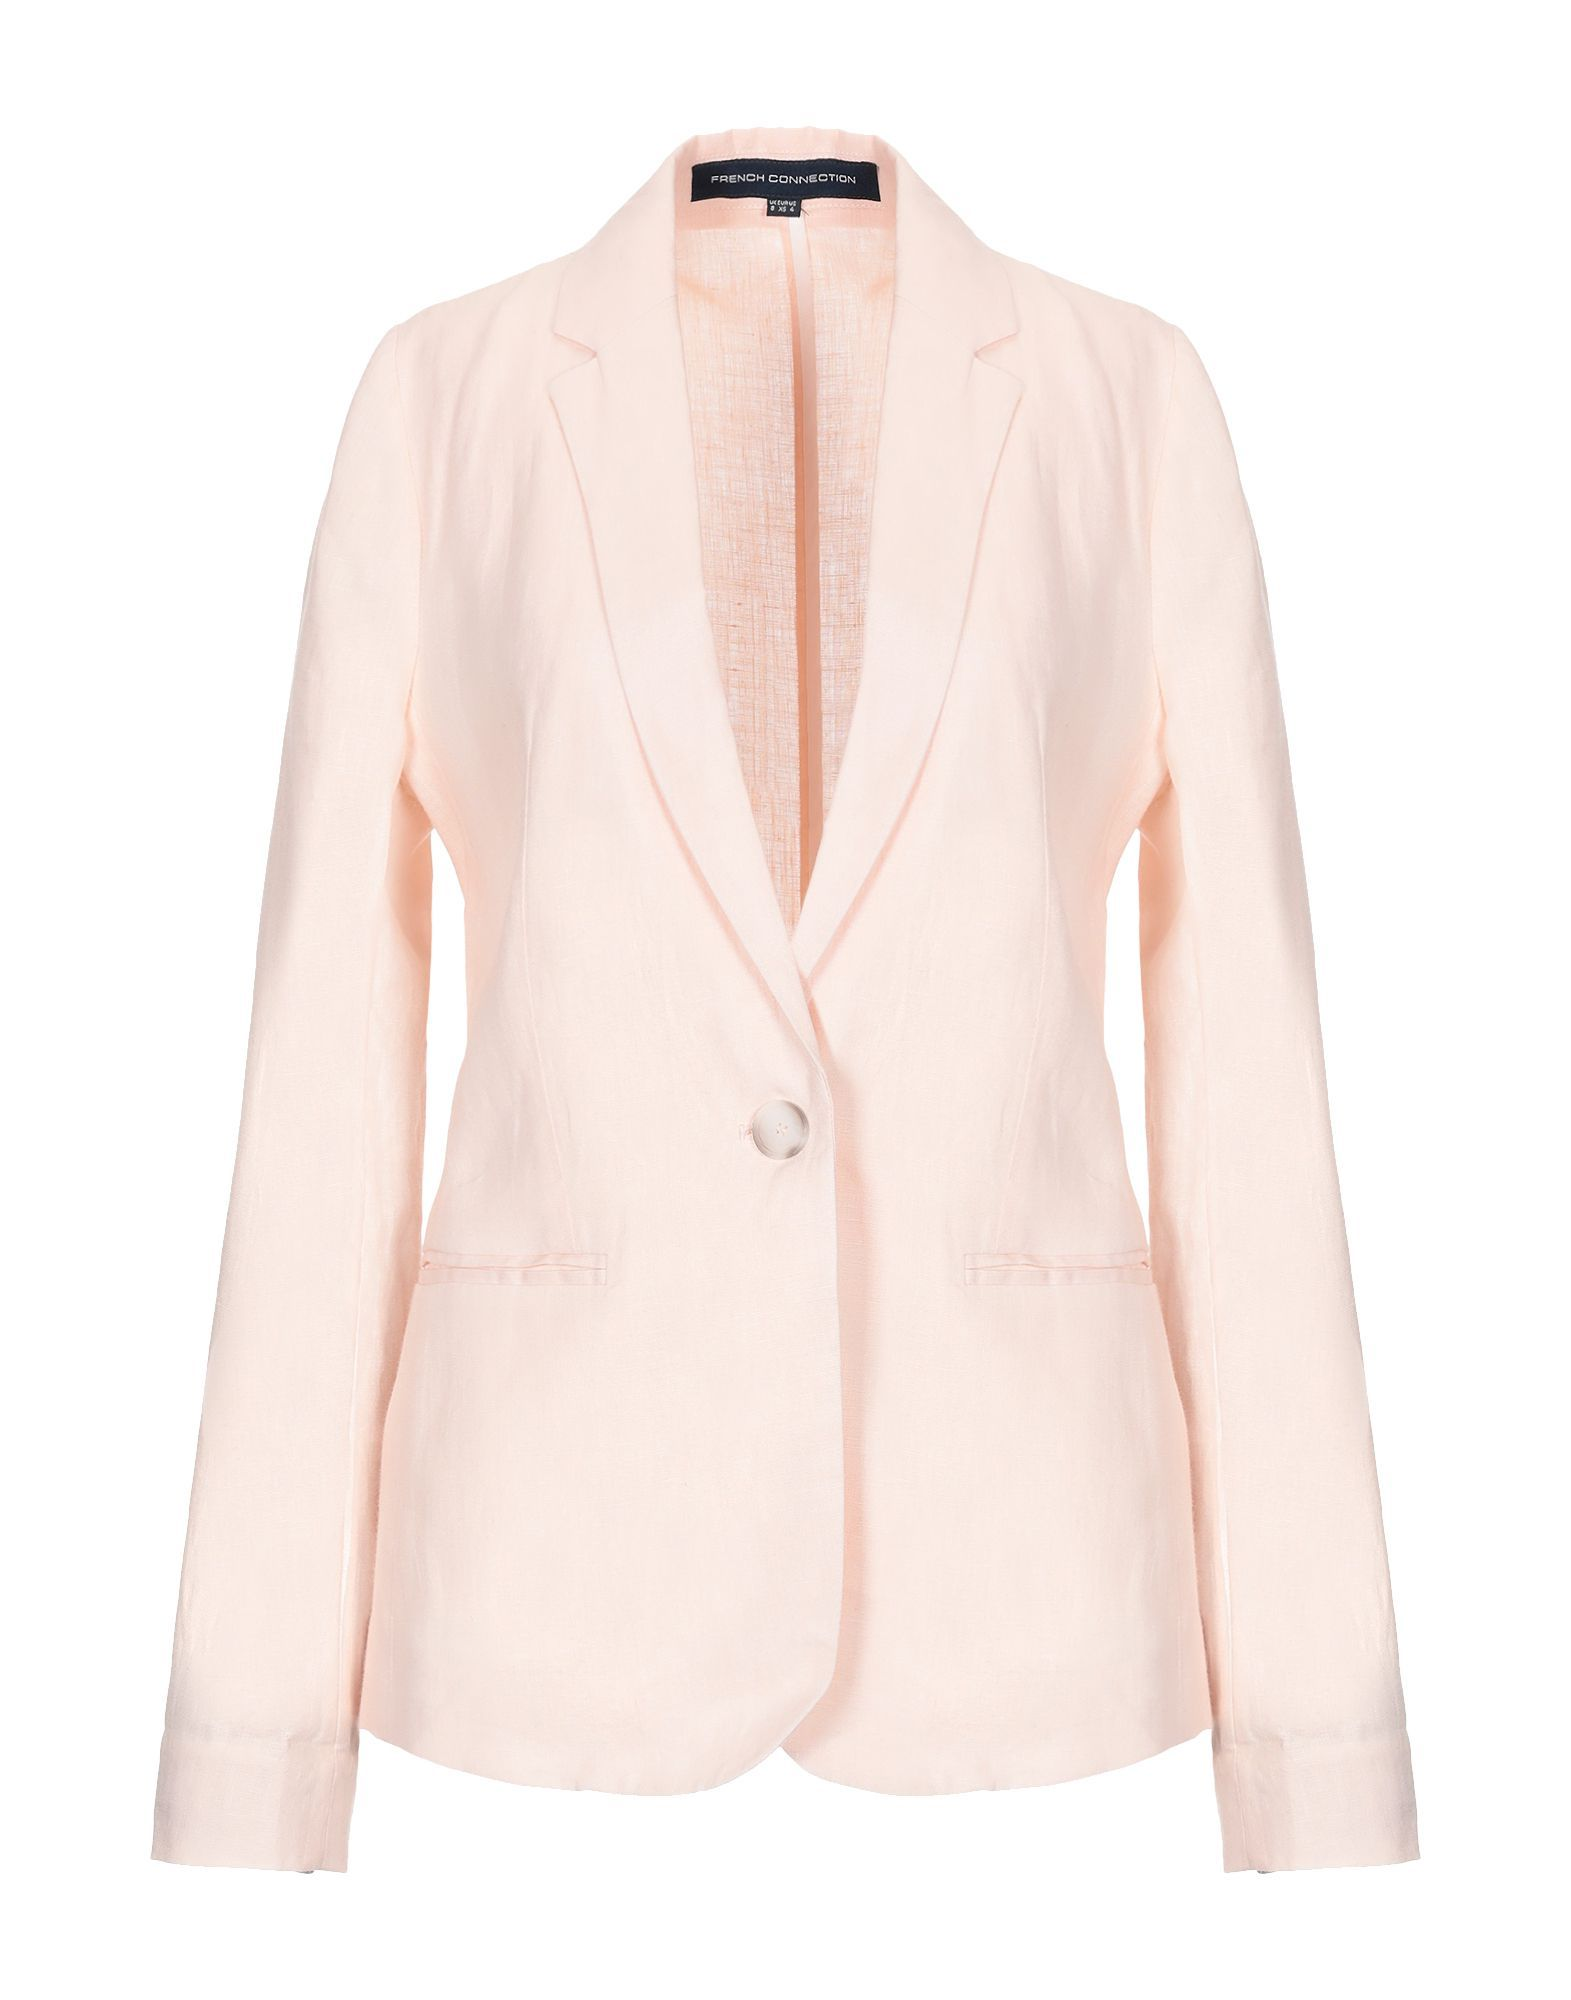 French Connection Light Pink Single Breasted Blazer